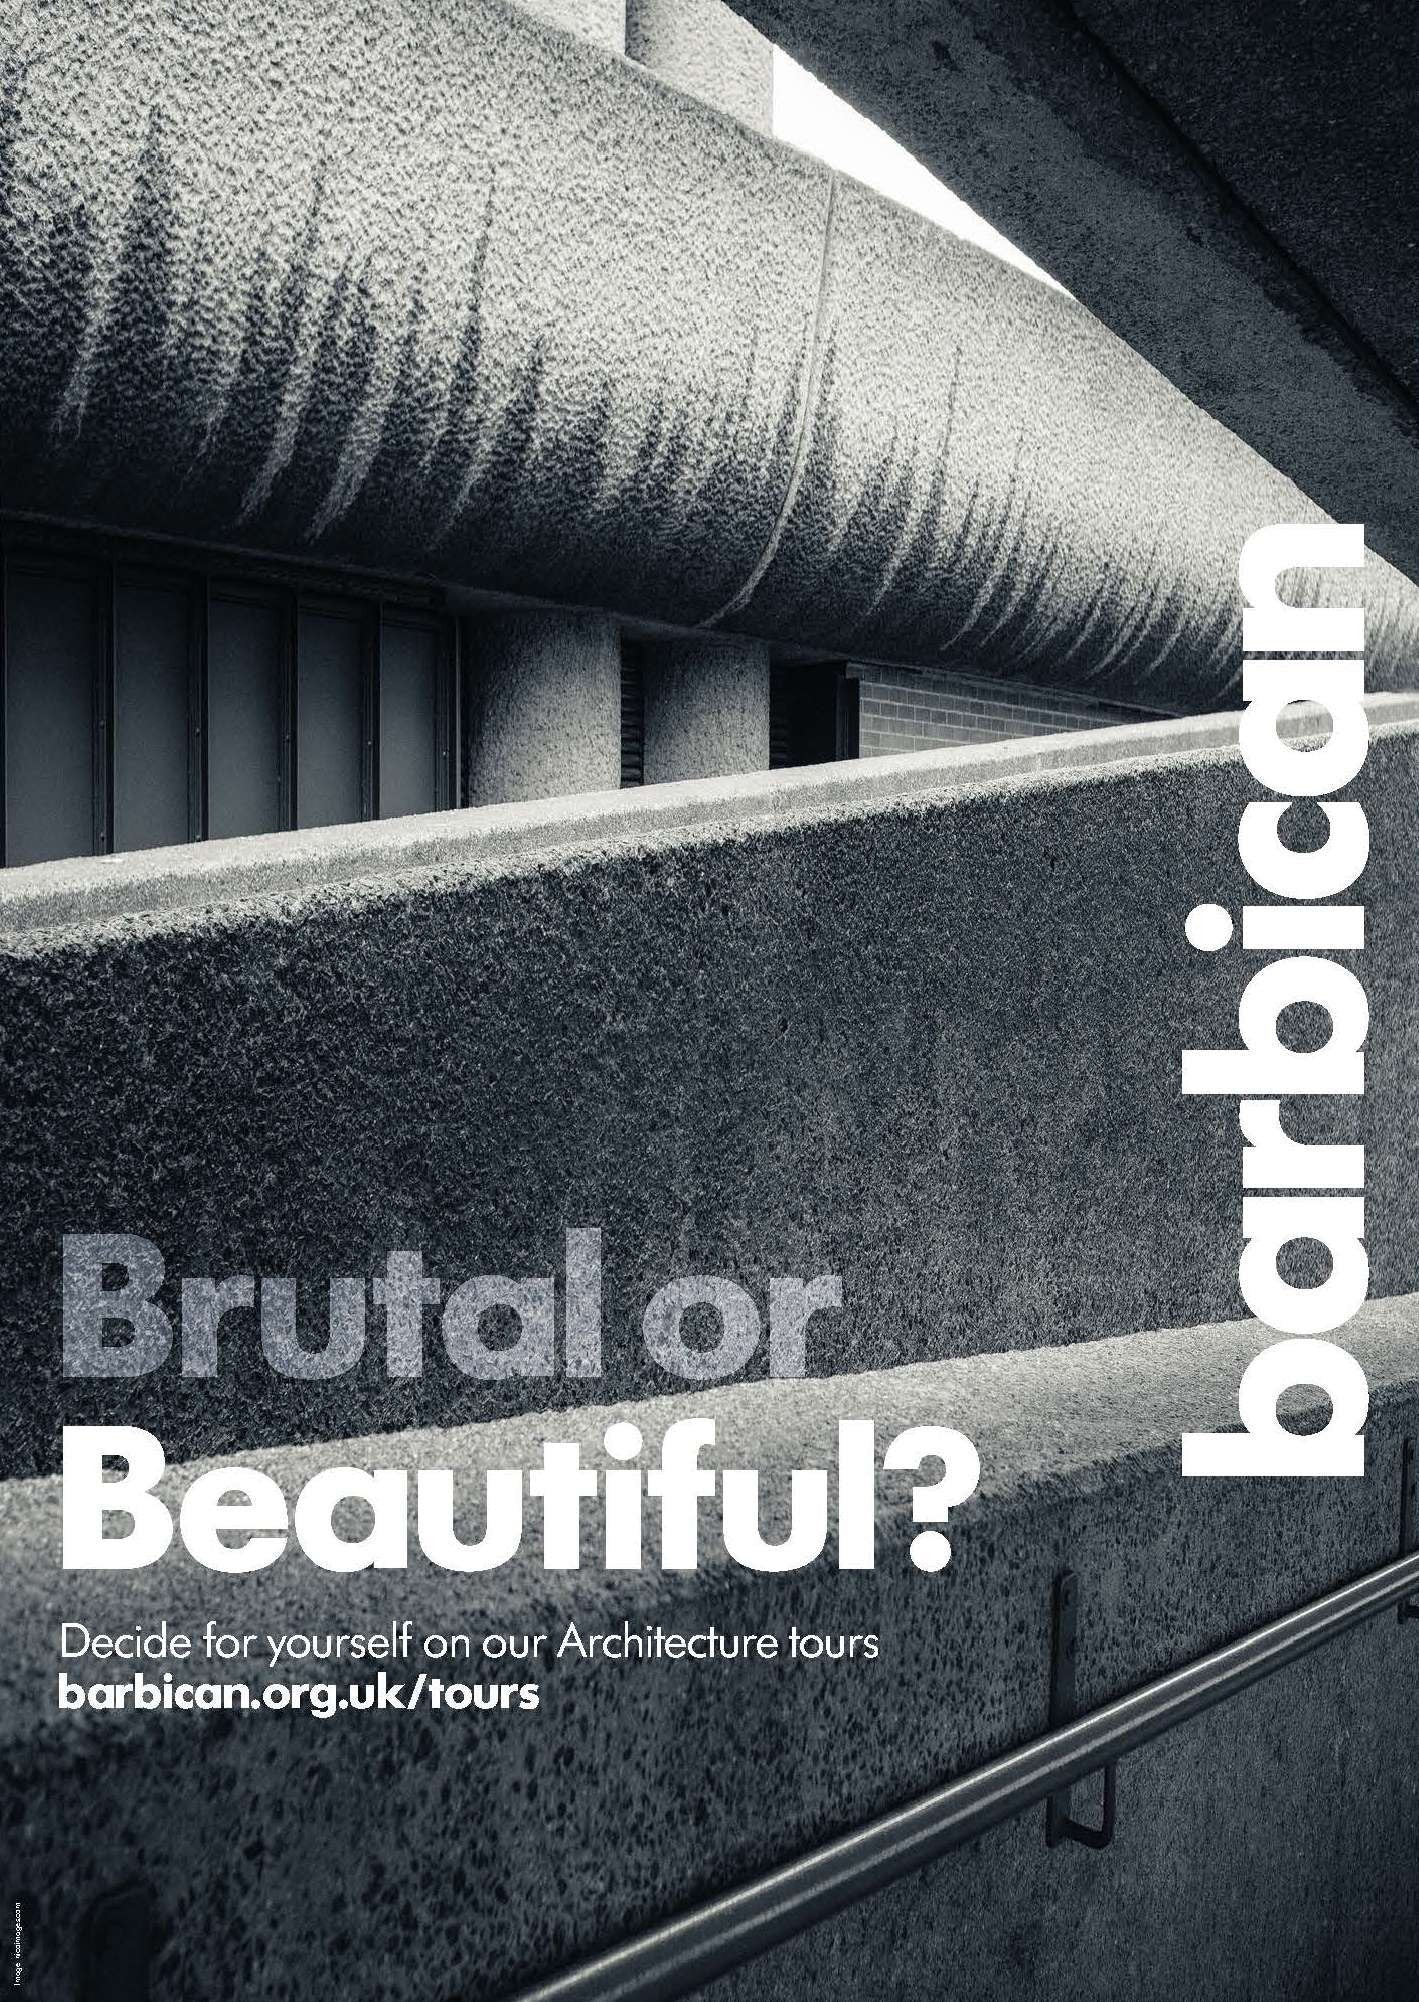 Brutal or Beautiful Poster